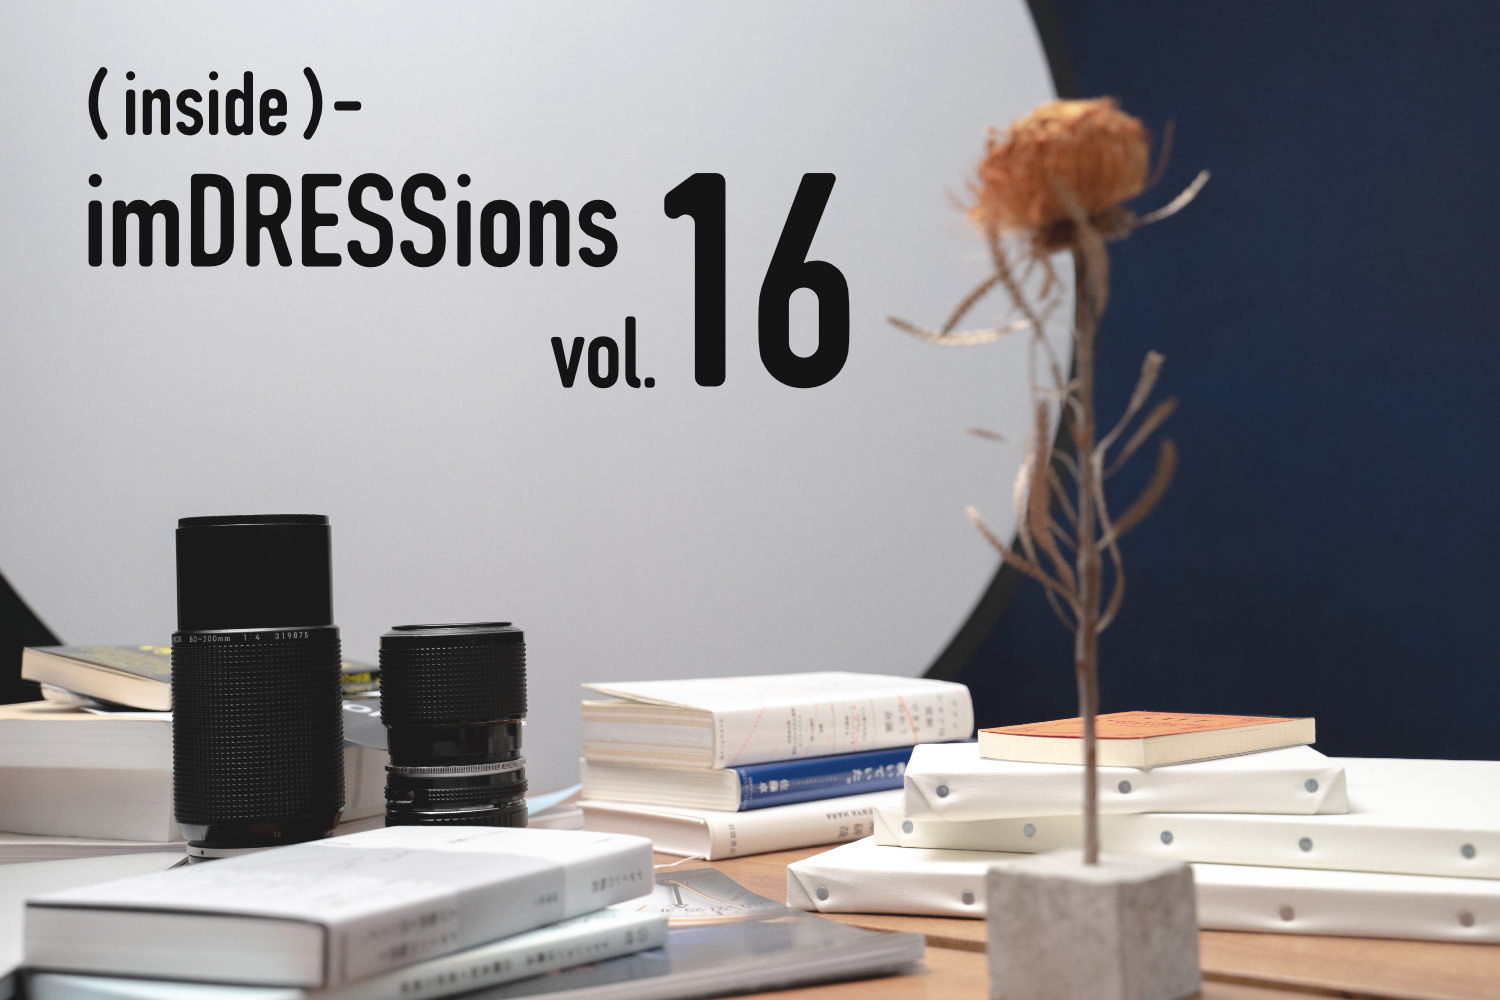 『(inside)-imDRESSions』vol.16